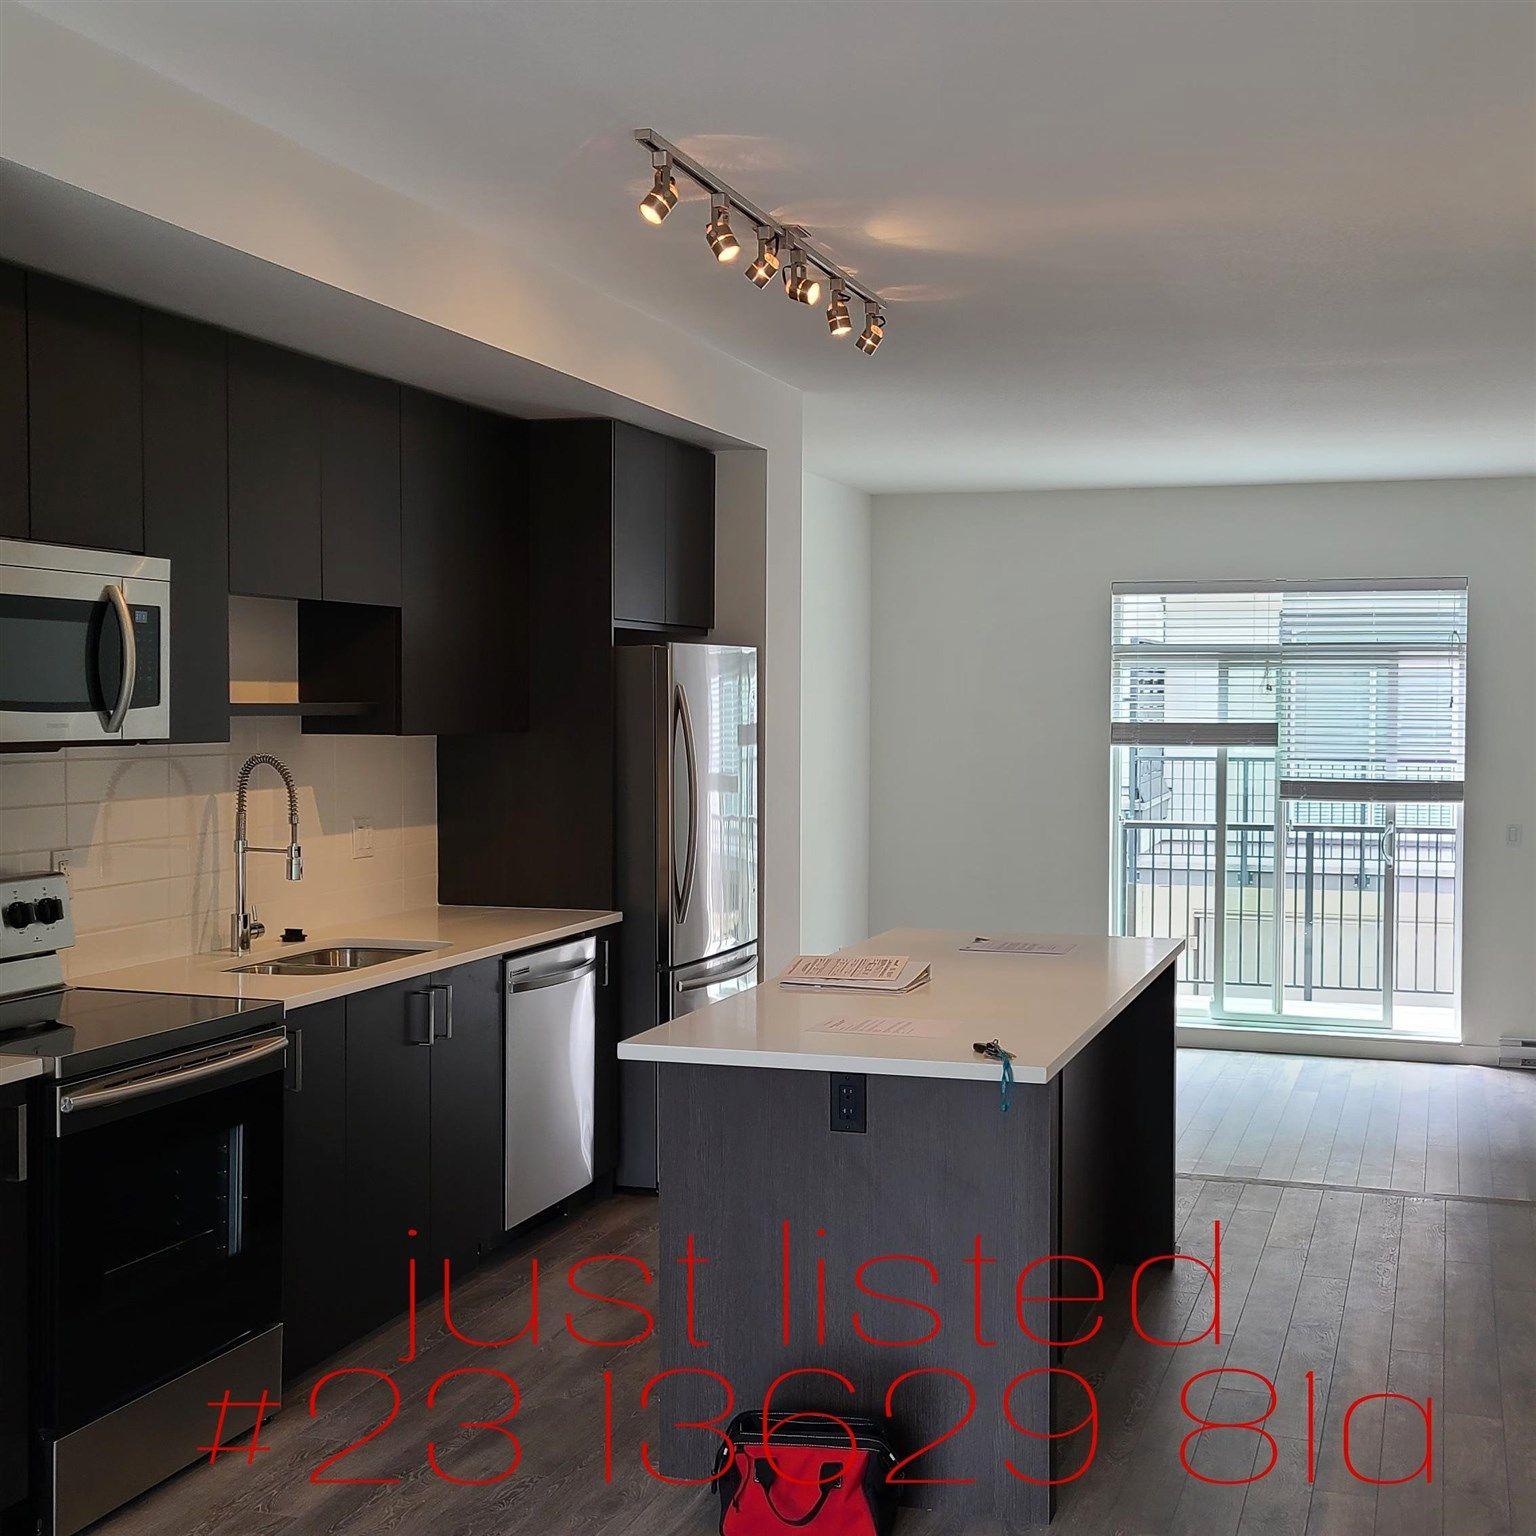 Main Photo: 23 13629 81A Avenue in Surrey: Bear Creek Green Timbers Townhouse for sale : MLS®# R2594320